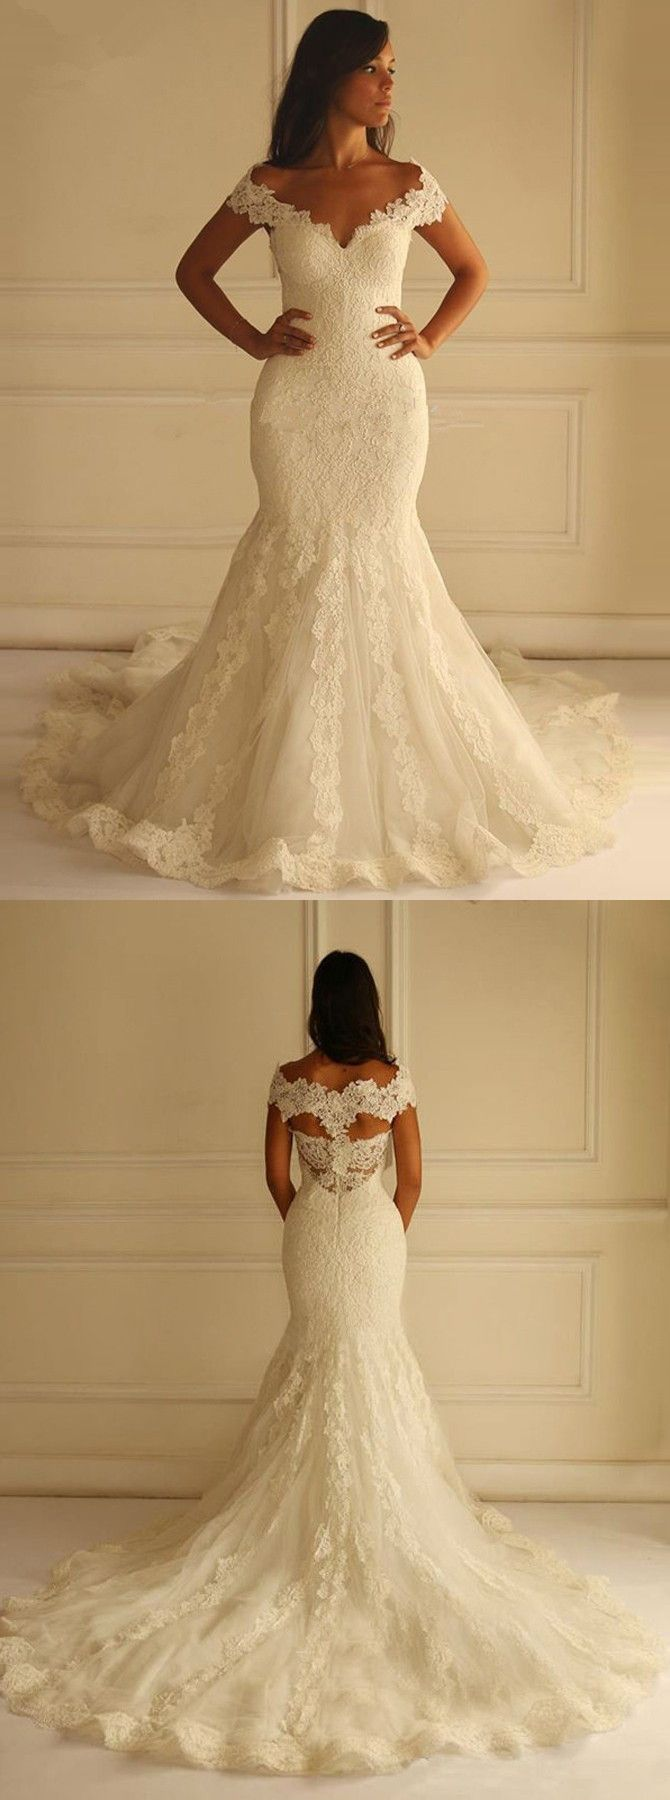 white wedding dress mermaid wedding dress lace long wedding dress